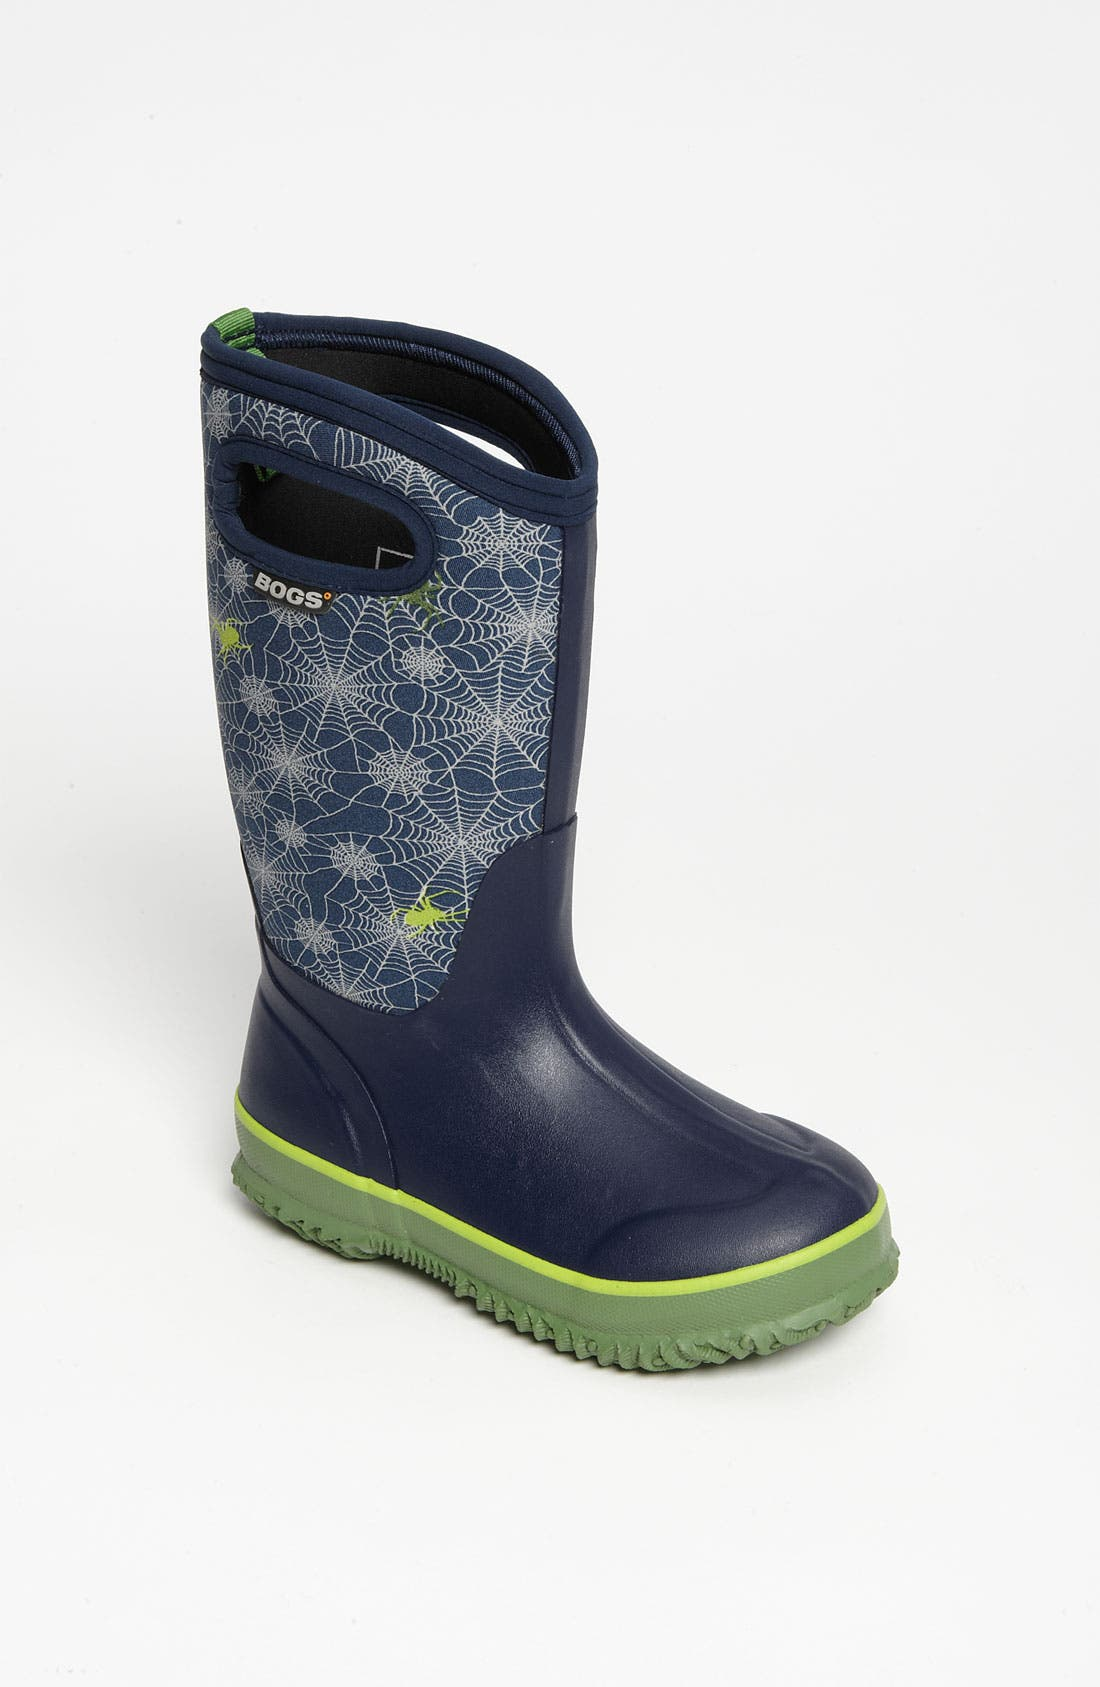 Alternate Image 1 Selected - Bogs 'Classic High - Spider' Waterproof Boot (Toddler, Little Kid & Big Kid)